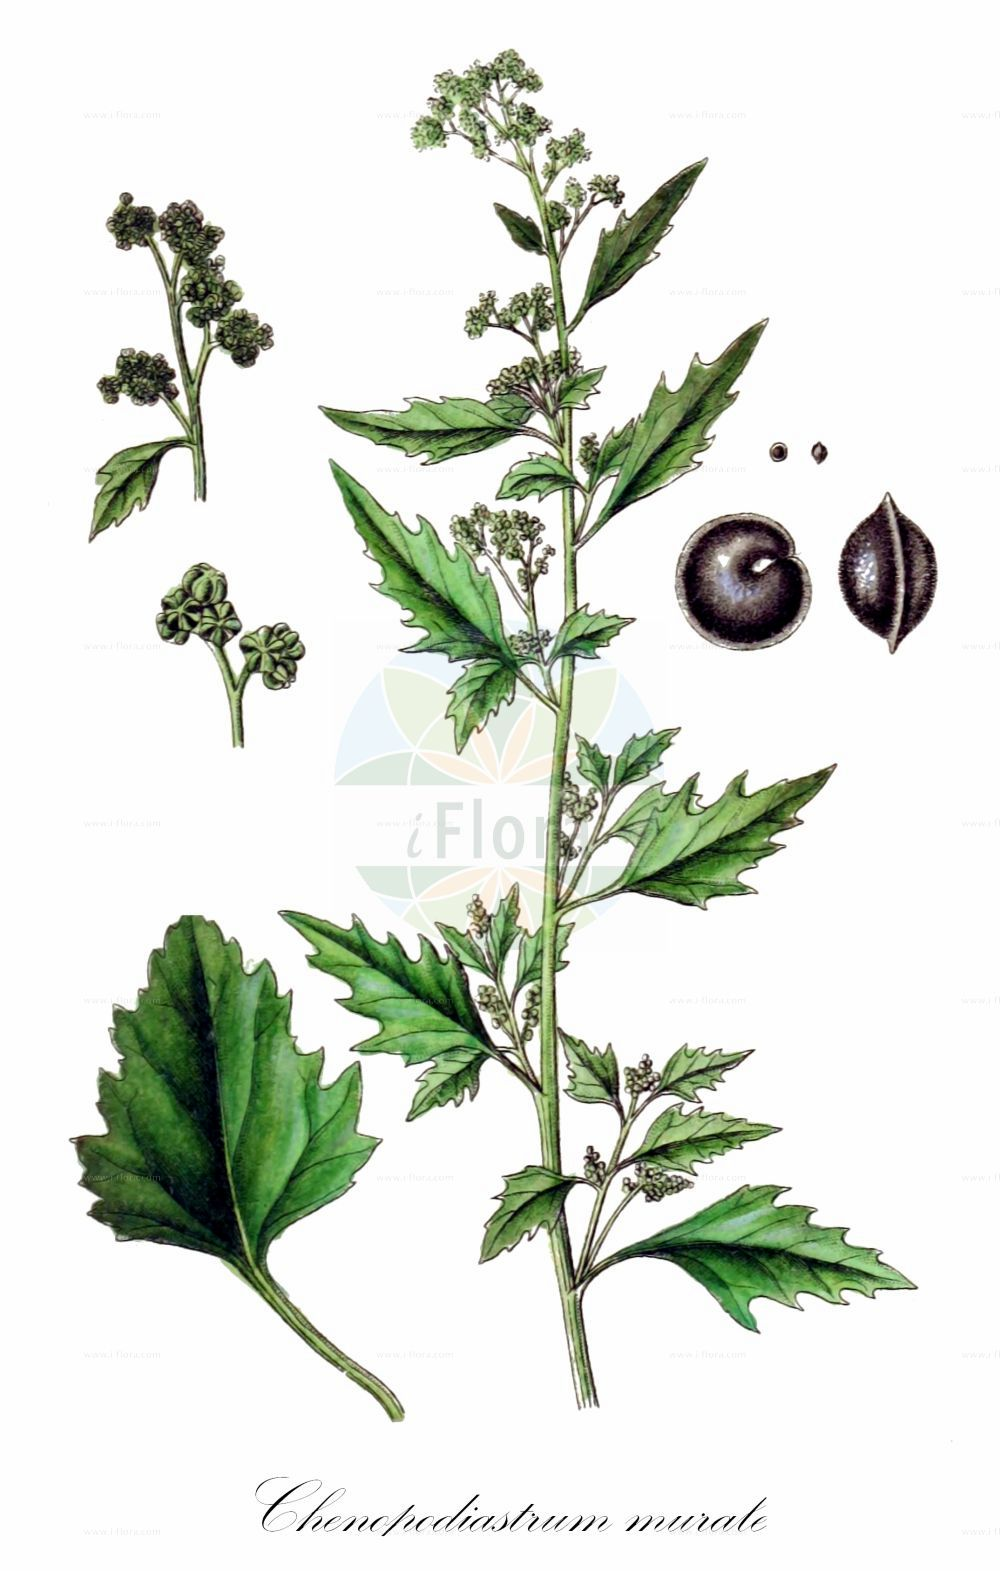 Historische Abbildung von Chenopodiastrum murale (Mauer-Gaensefuss - Nettle-leaved Goosefoot). Das Bild zeigt Blatt, Bluete, Frucht und Same. ---- Historical Drawing of Chenopodiastrum murale (Mauer-Gaensefuss - Nettle-leaved Goosefoot).The image is showing leaf, flower, fruit and seed.(Chenopodiastrum murale,Mauer-Gaensefuss,Nettle-leaved Goosefoot,Chenopodium murale,Nettle-leaf Goosefoot,Nettle-leaved Fat-Hen,Wall Goosefoot,Chenopodiastrum,Amaranthaceae,Fuchsschwanzgewaechse,Pigweed family,Blatt,Bluete,Frucht,Same,leaf,flower,fruit,seed,Sturm (1796f))